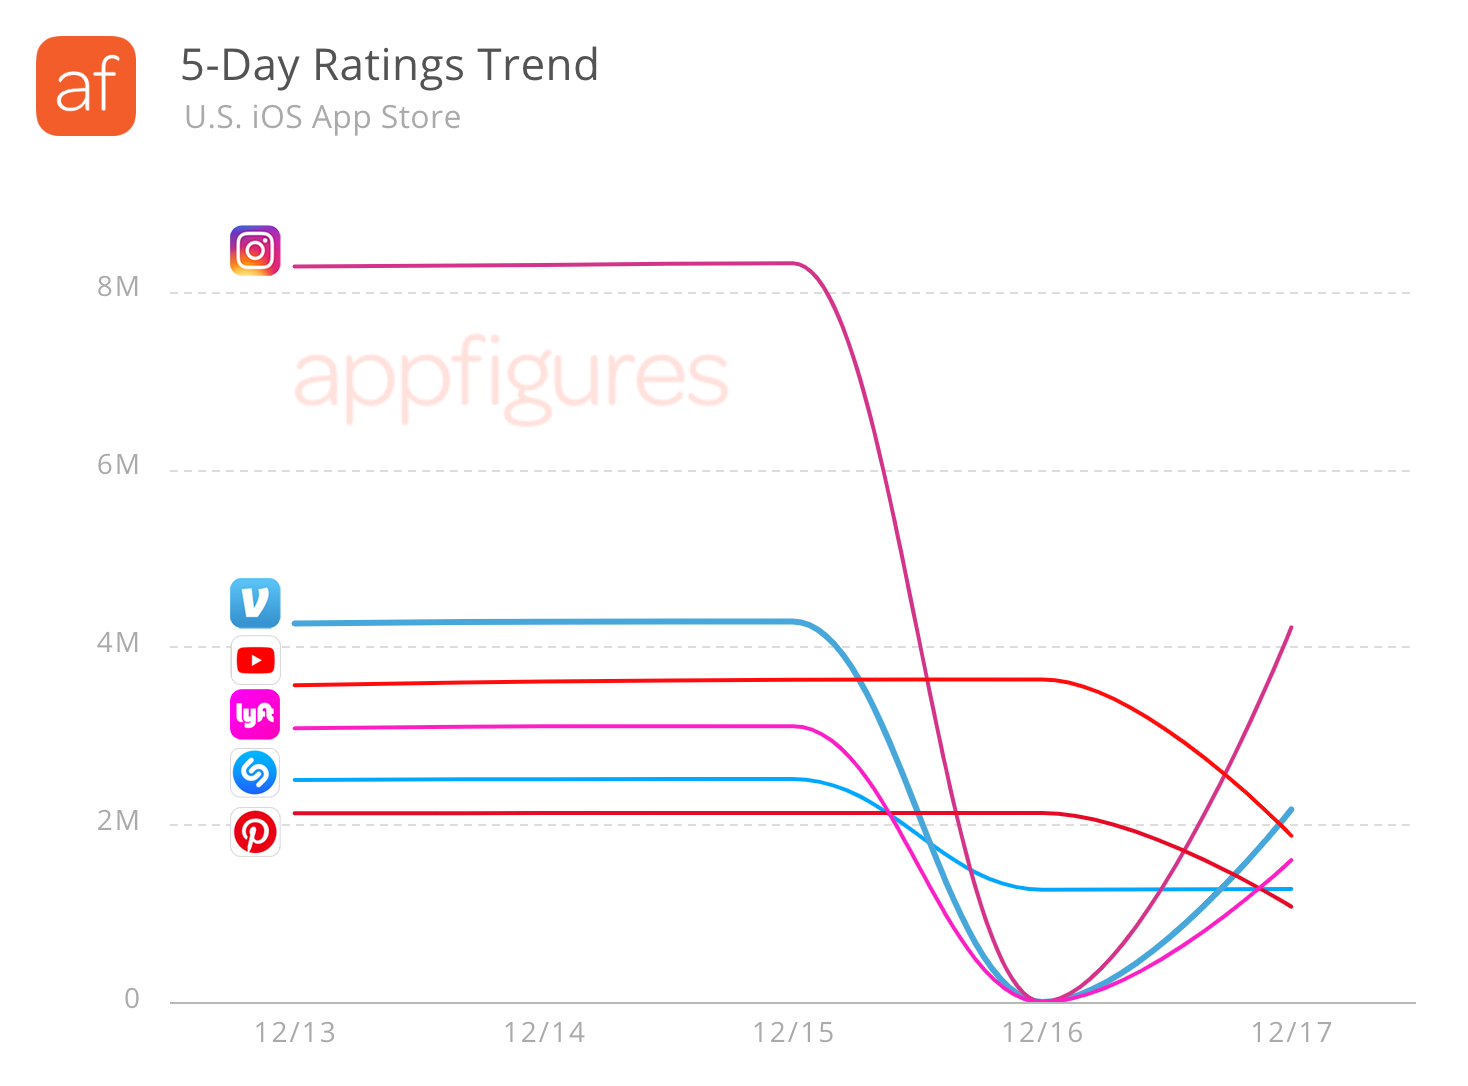 iOS App Ratings Trend in the US